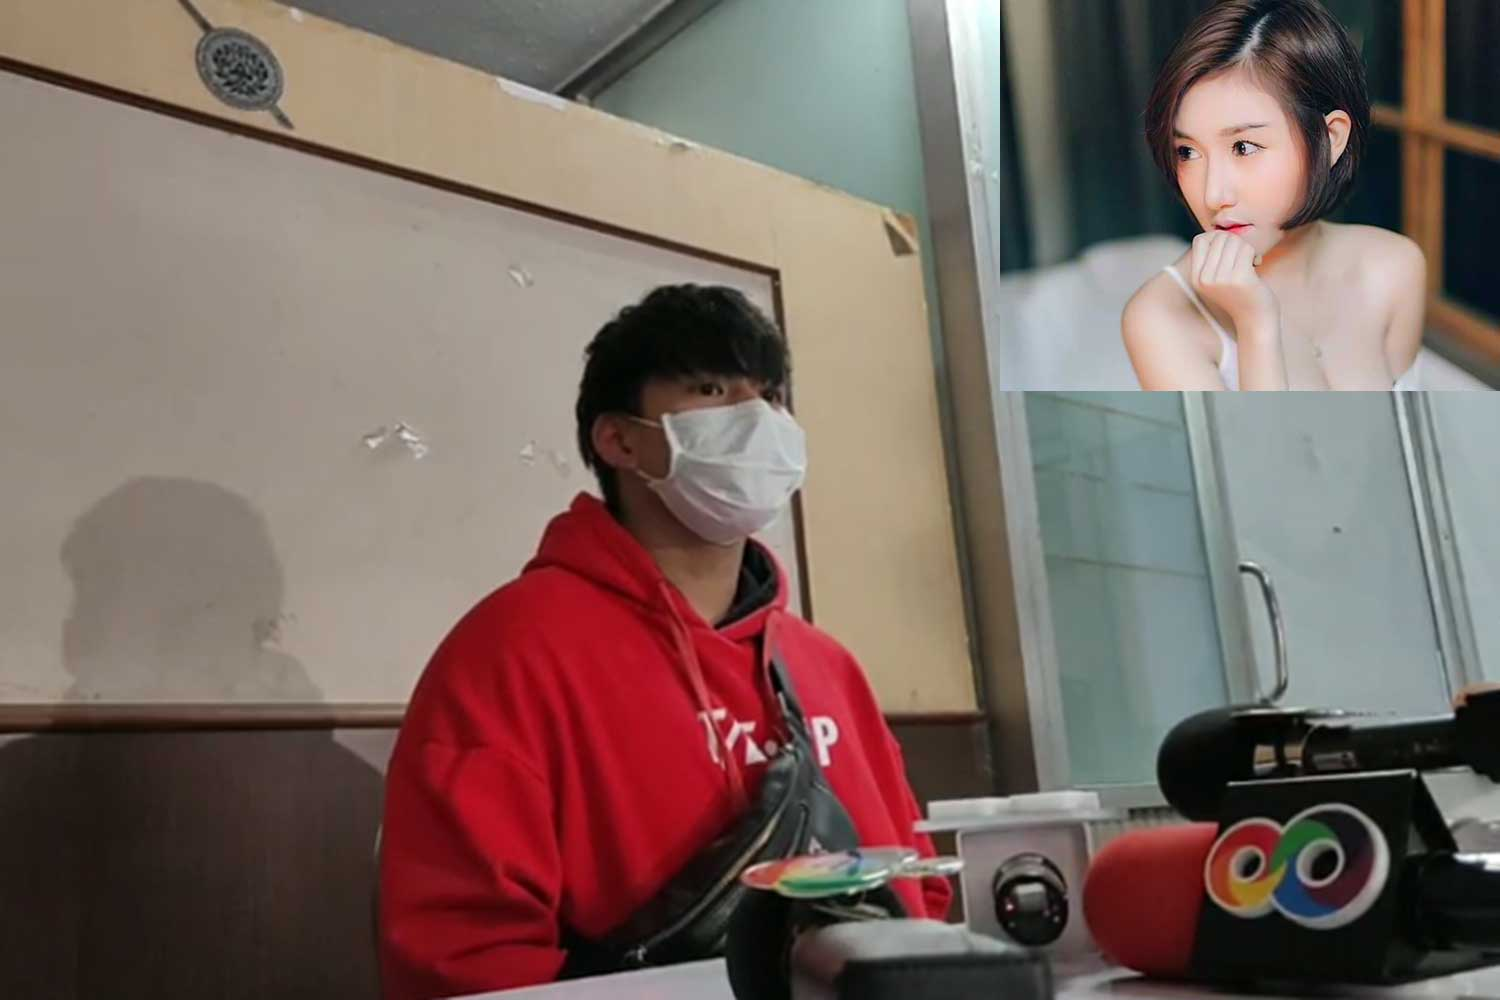 Rachadech Wongtabutr, or Nam Oun, is being questioned about the death of a product promotion girl (inset) whose body was found on a sofa at his condominium building early on Tuesday. (Photo taken from FM91bkk.com)